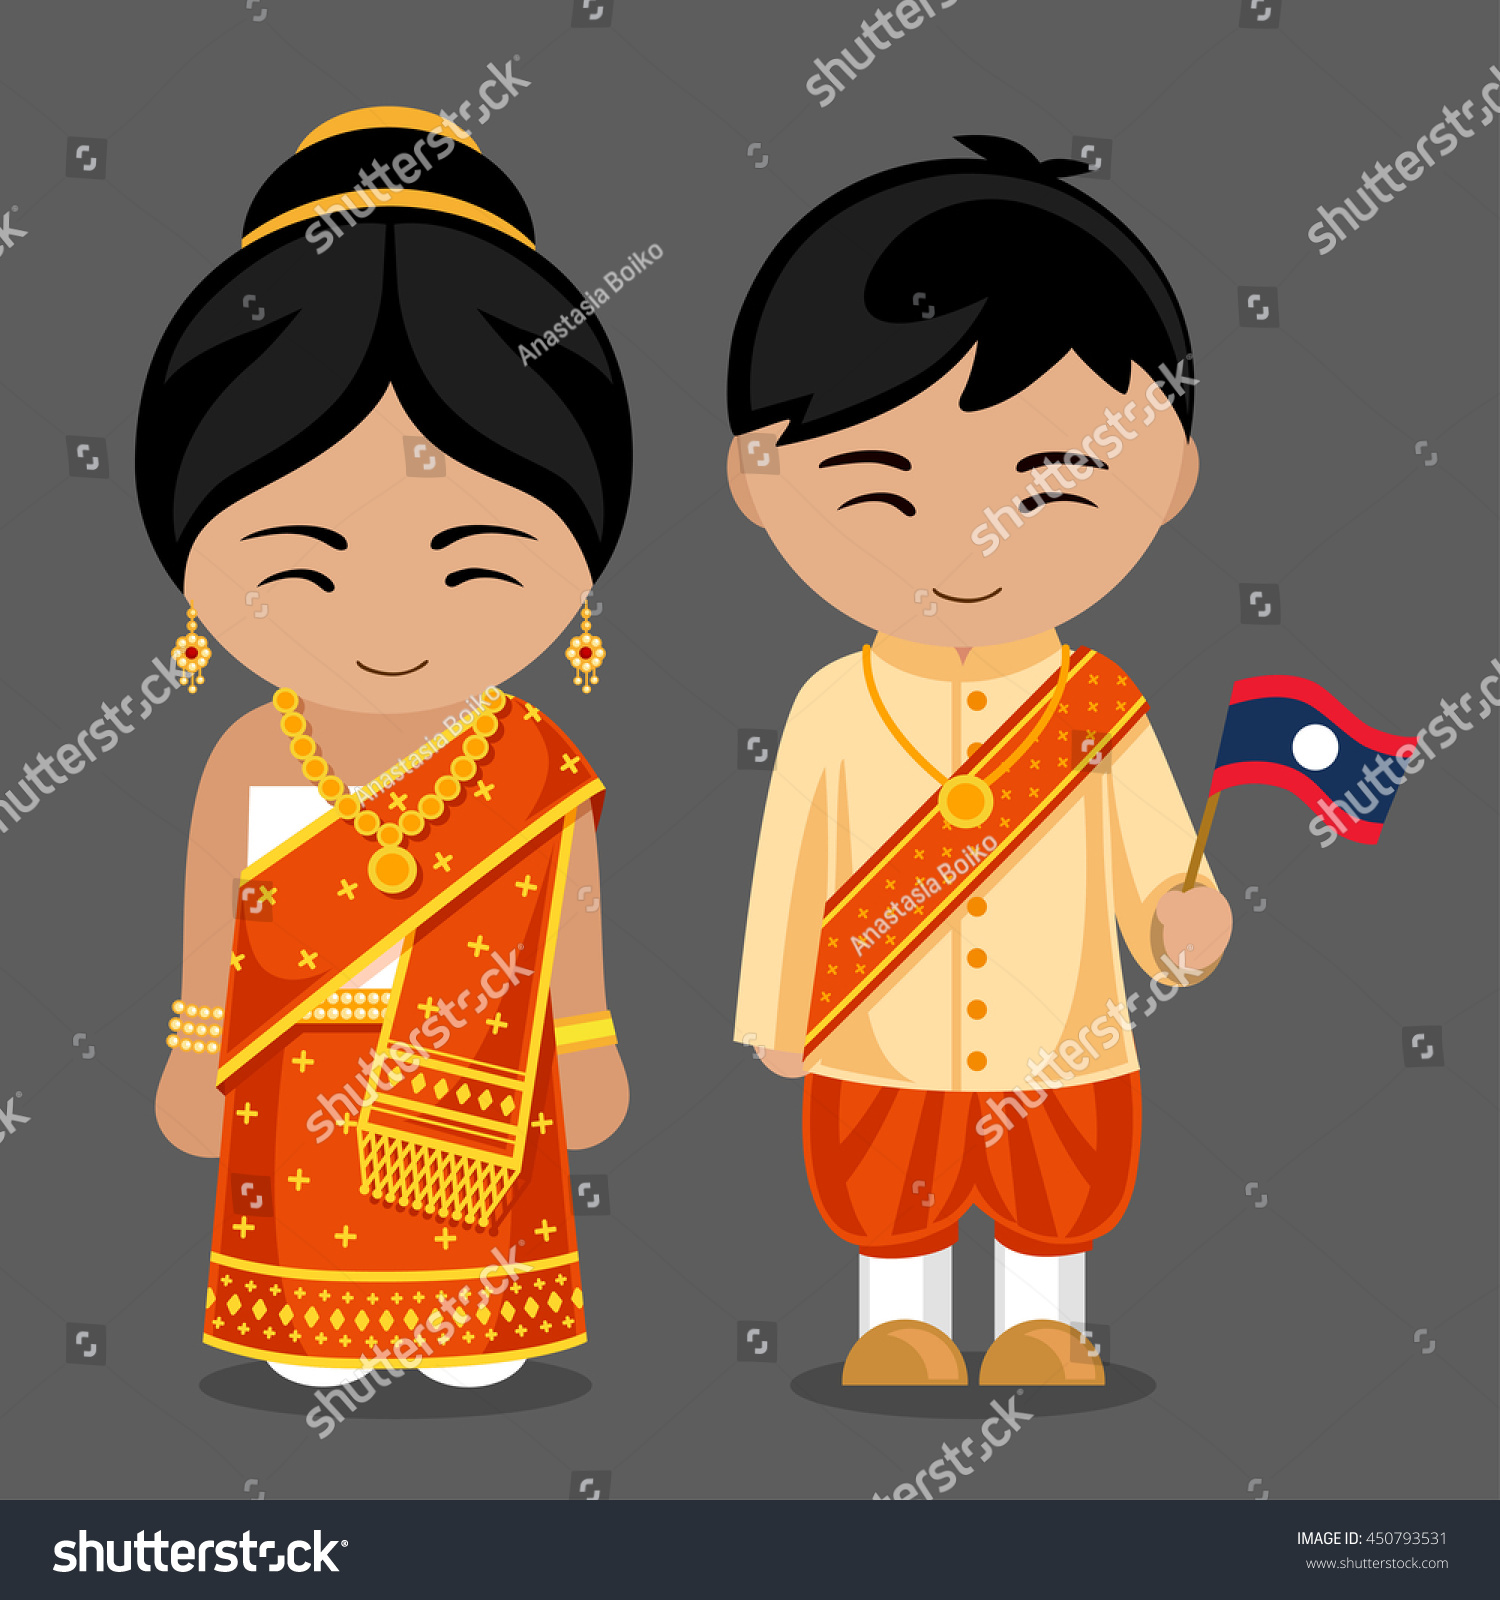 Welcome World League Of Beauty And Fashion Official Web: Laotians National Dress Flag Man Woman Stock Vector